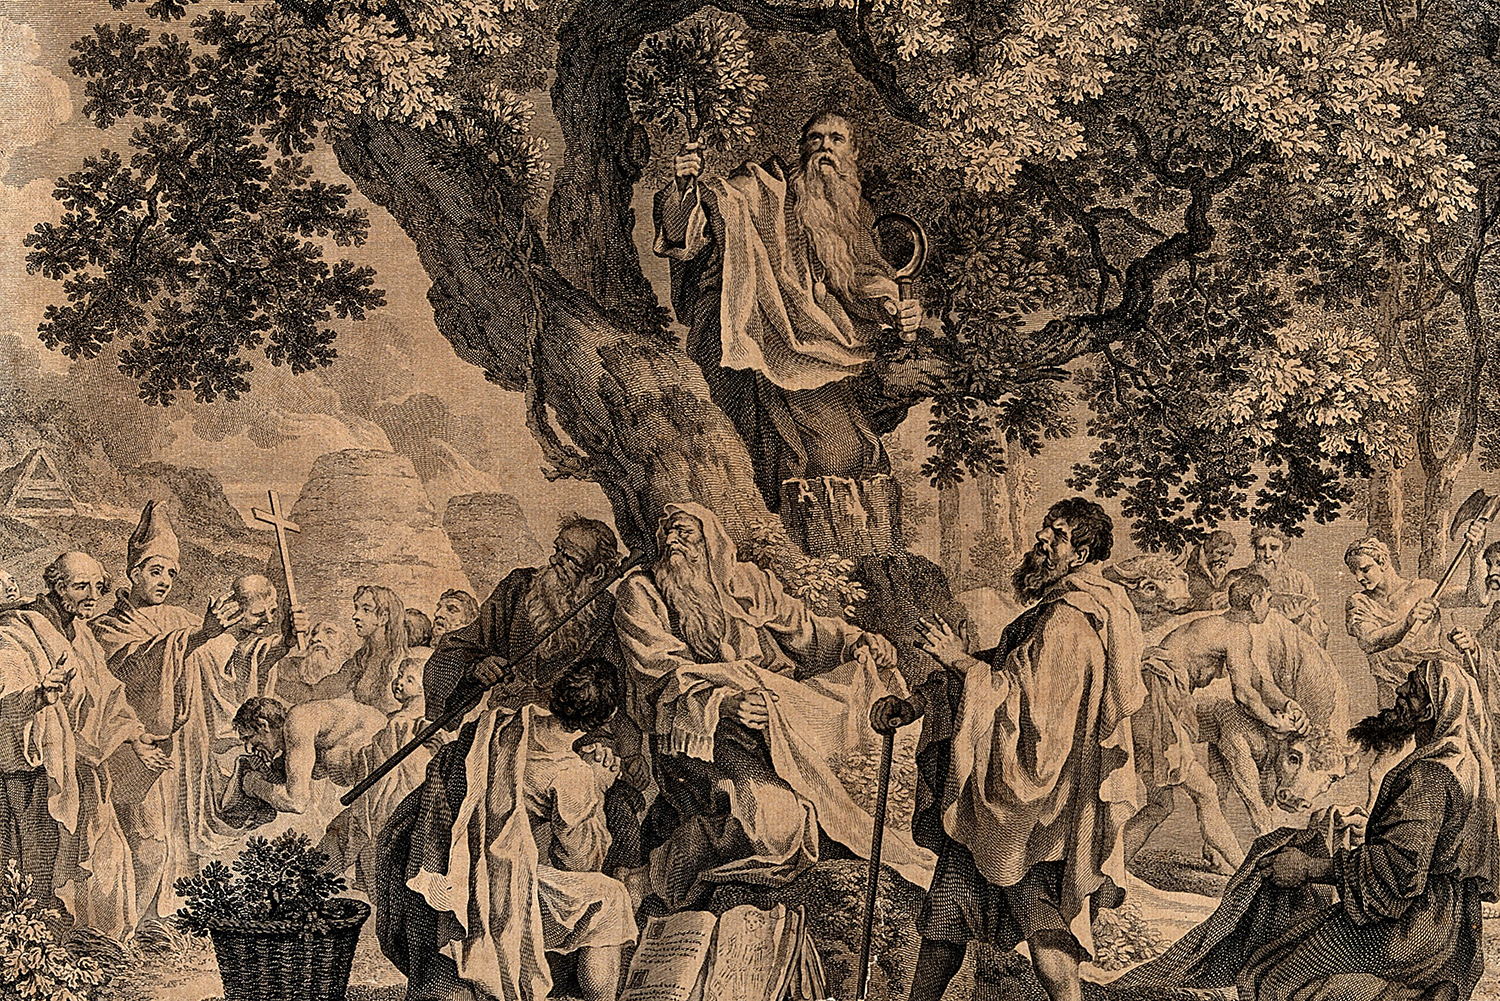 'The Druids; or the conversion of the Britons to Christianity'. Engraving by S.F. Ravenet, 1752, after F. Hayman.